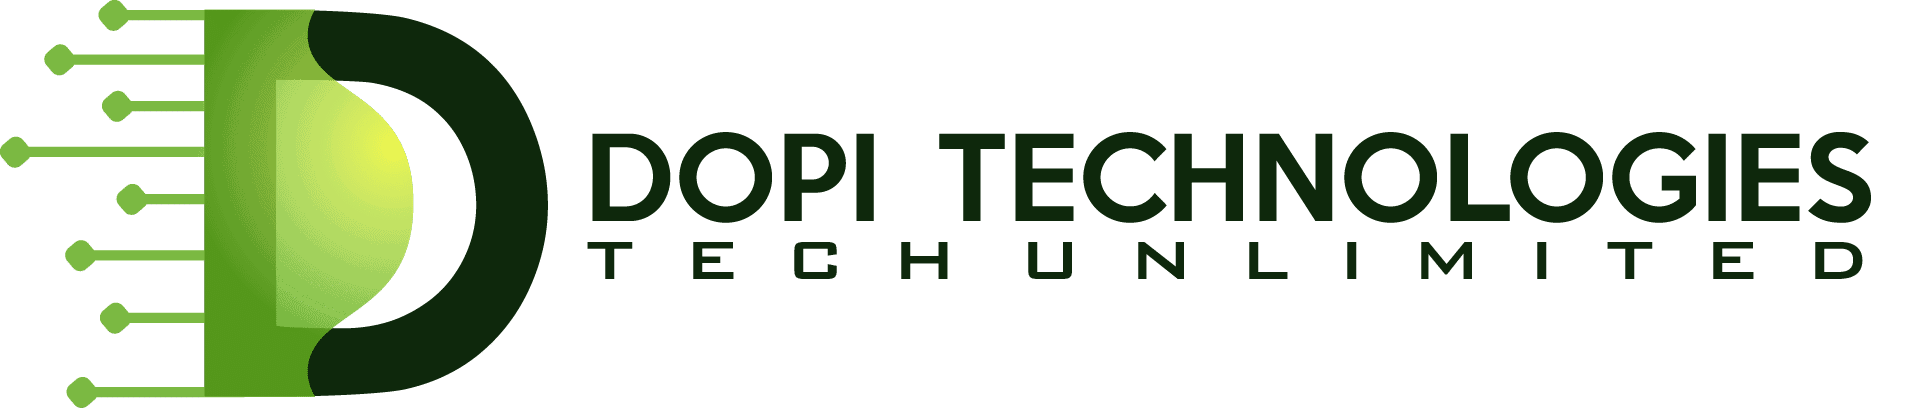 Dopi Techno;ogies